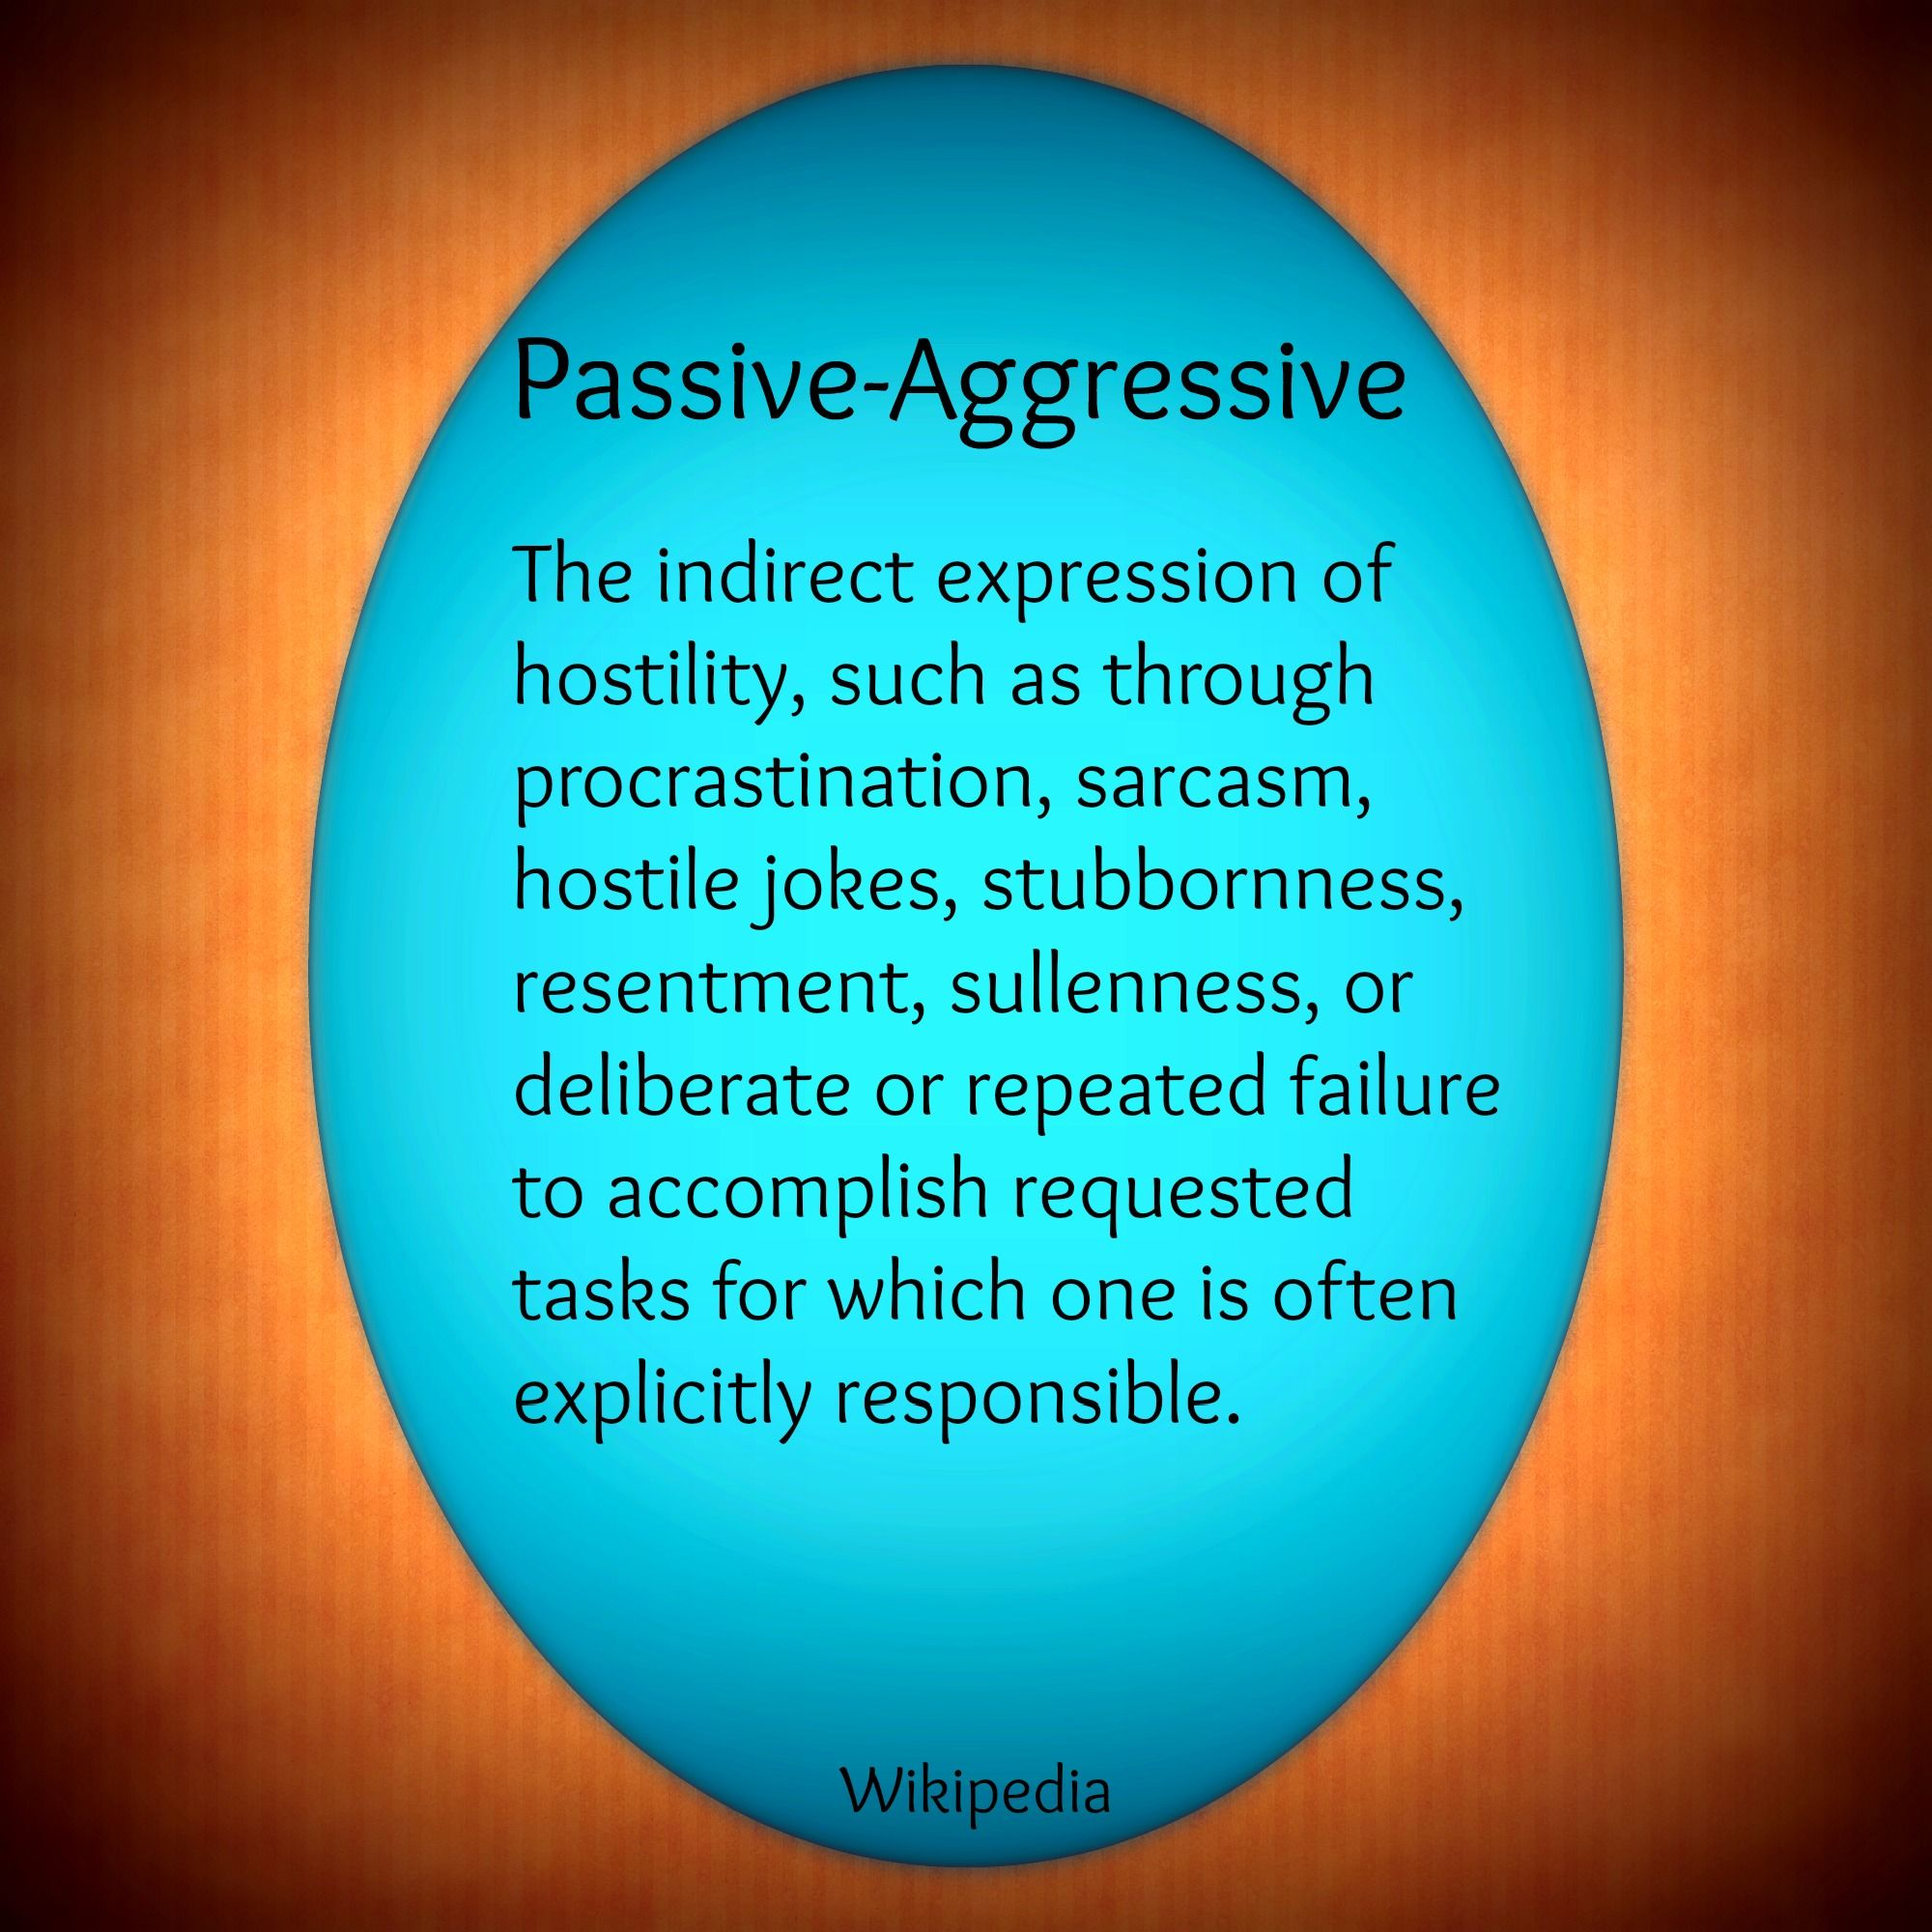 passive aggressive ** note ** not only includes hostility as in meme